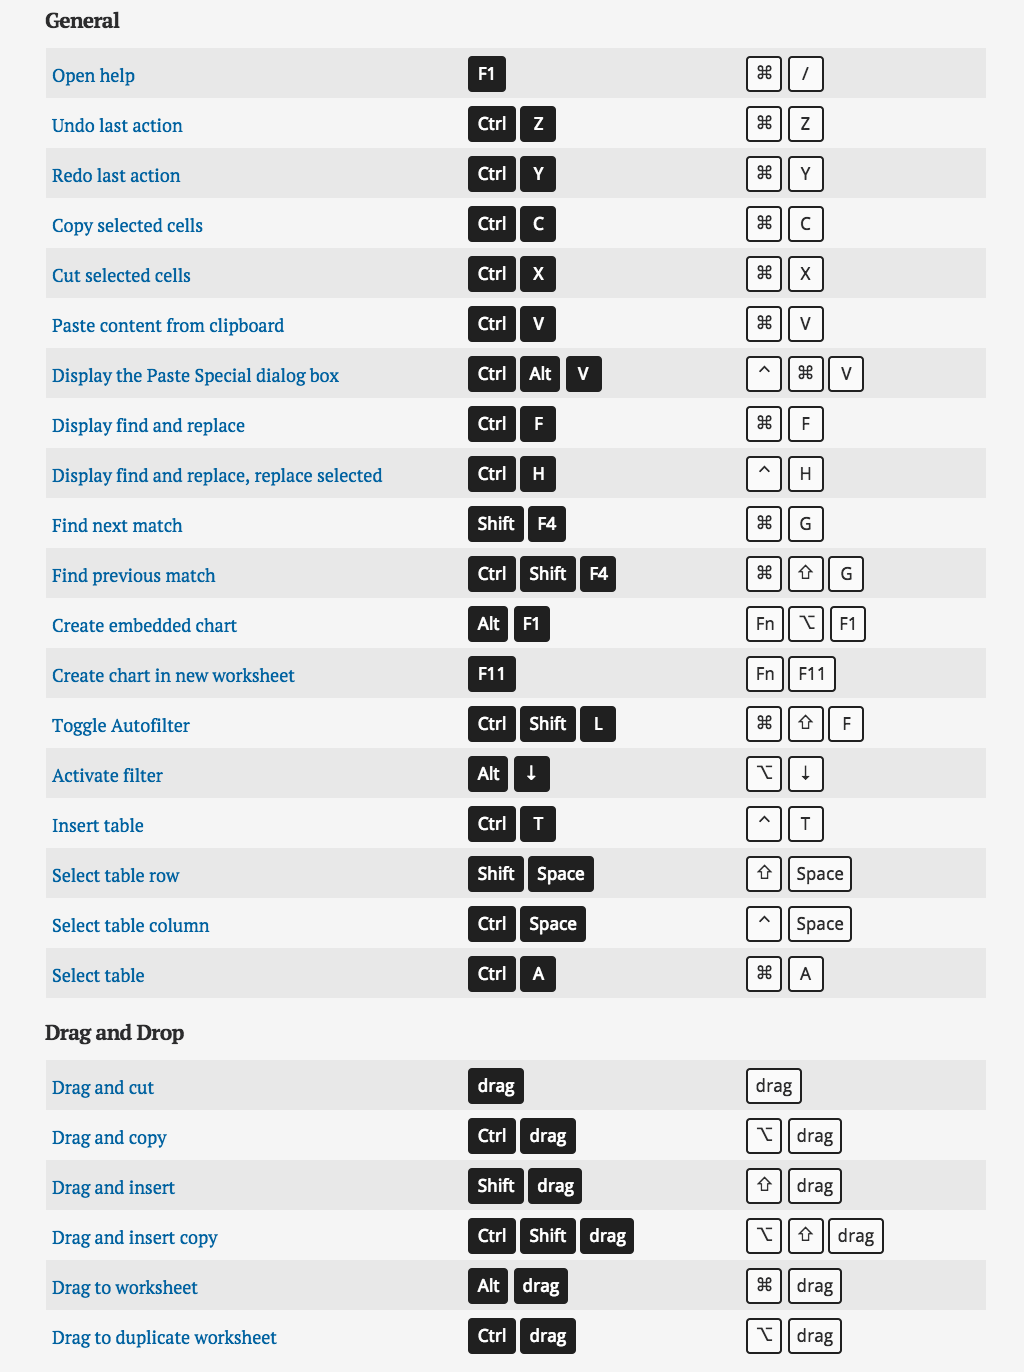 Excel shortcuts for pcmac httpsexceljetkeyboard shortcuts a clear list of over 200 excel shortcuts for both windows and mac side by side windows shortcuts in dark gray on the left mac shortcuts in white on the biocorpaavc Gallery